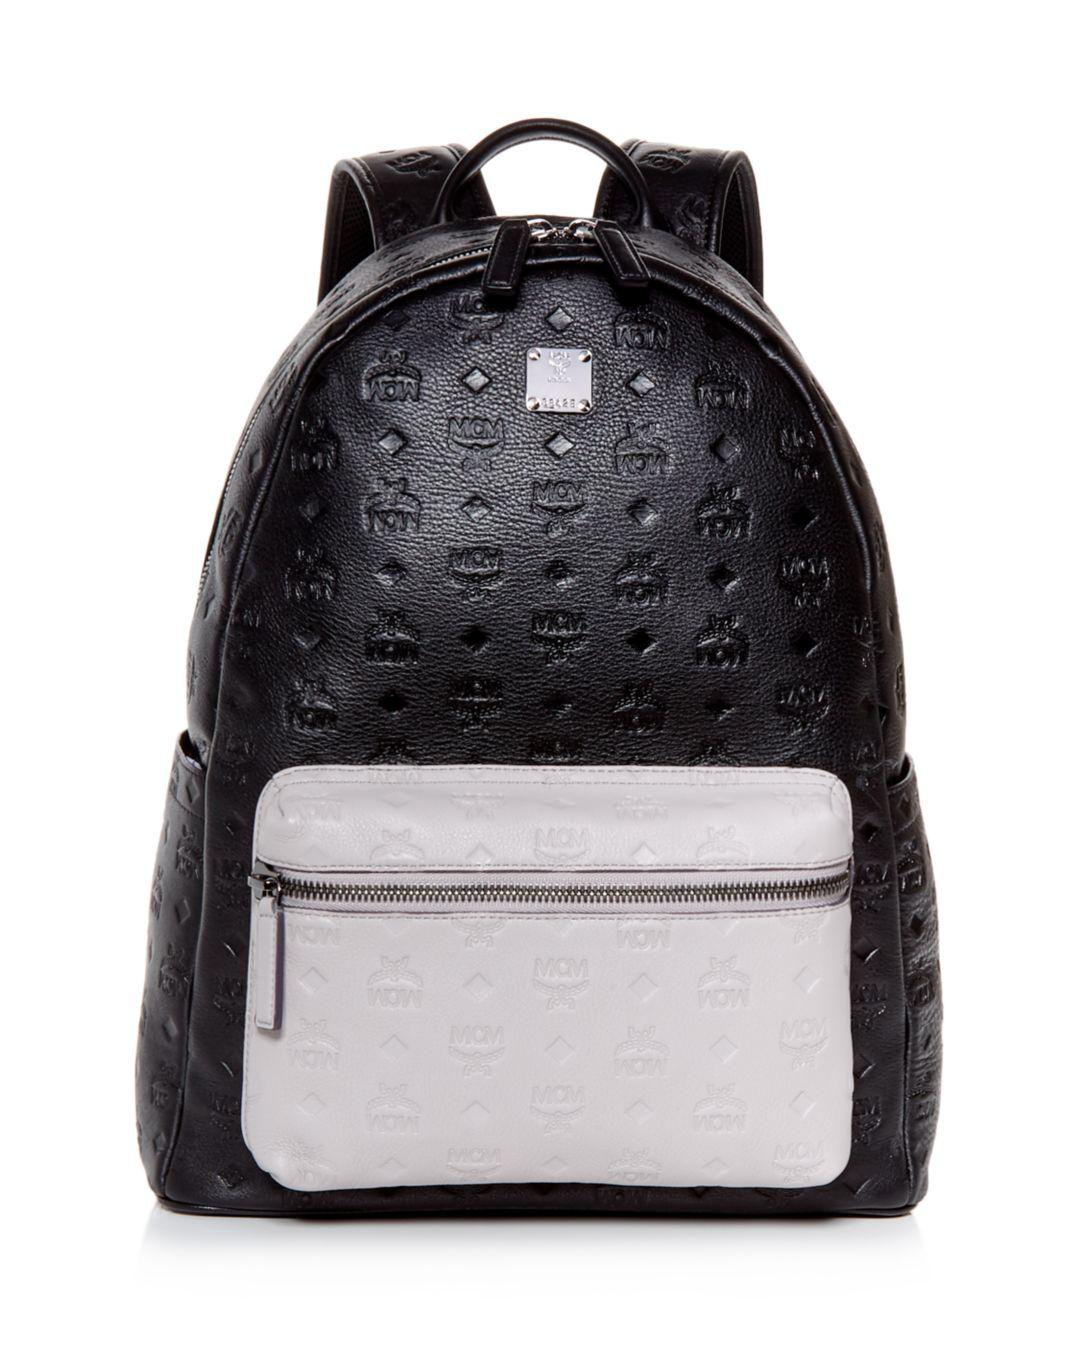 4e67fd3be6b1 MCM Tone Medium Leather Backpack in Black for Men - Lyst